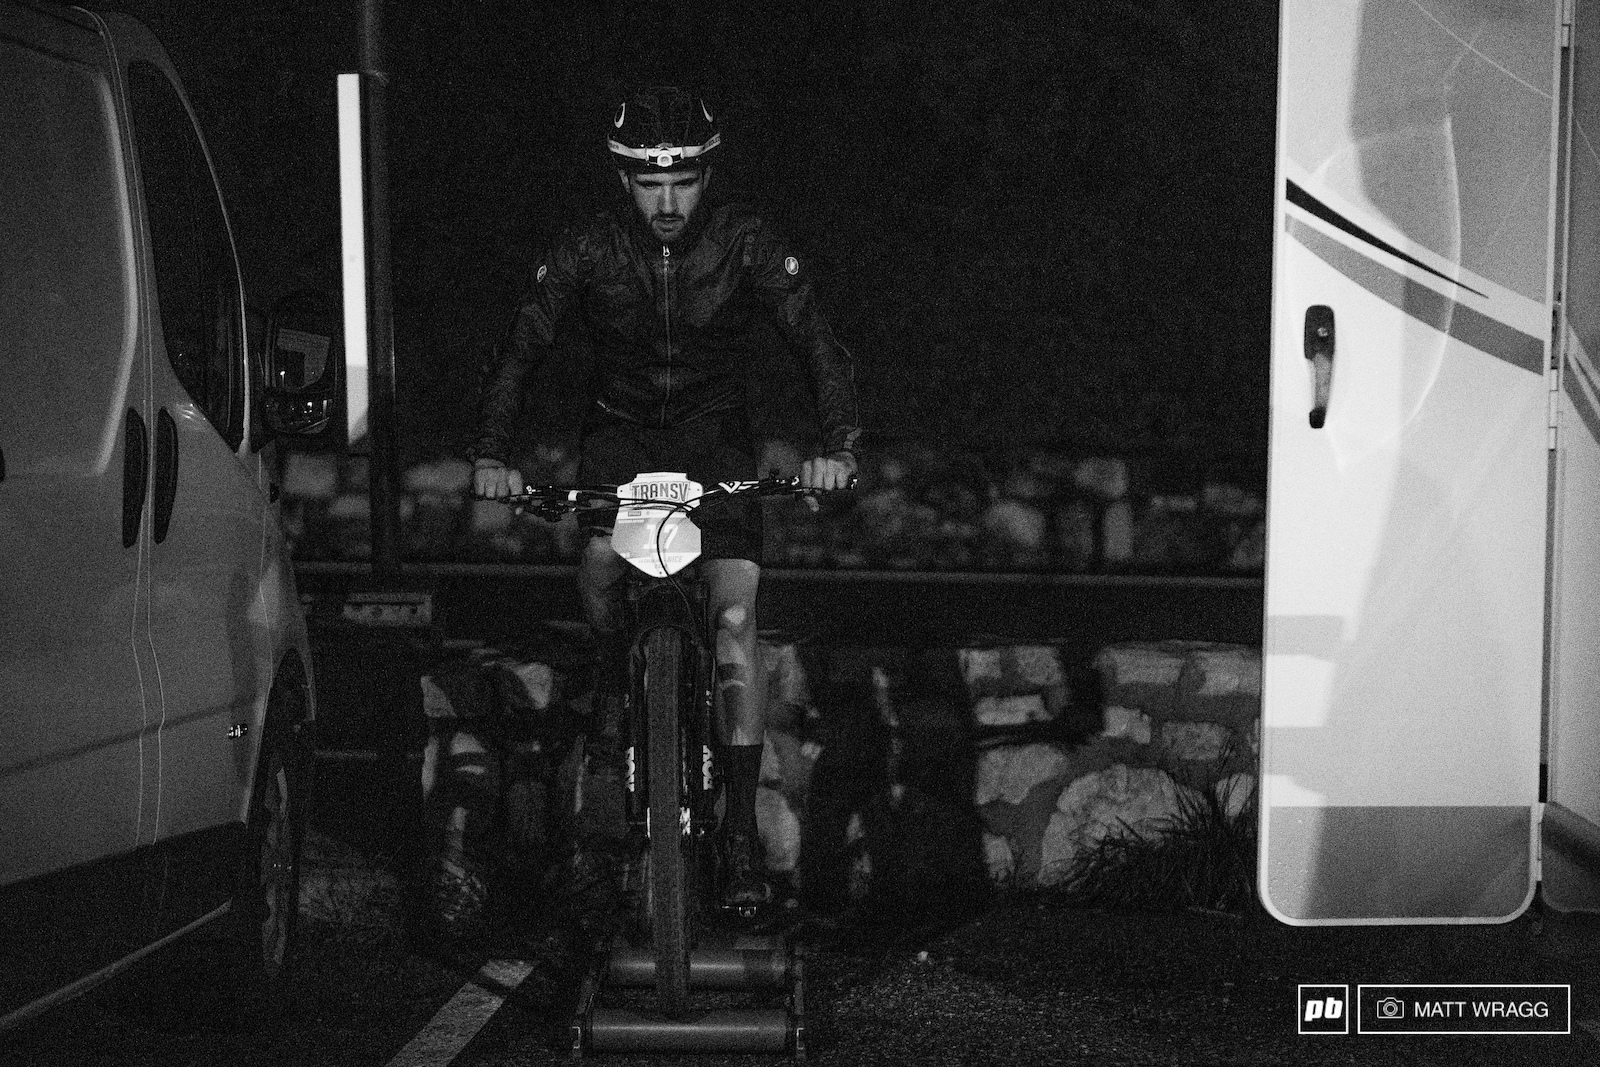 On the turbo trainer before 6am - it takes real commitment to come and play here.